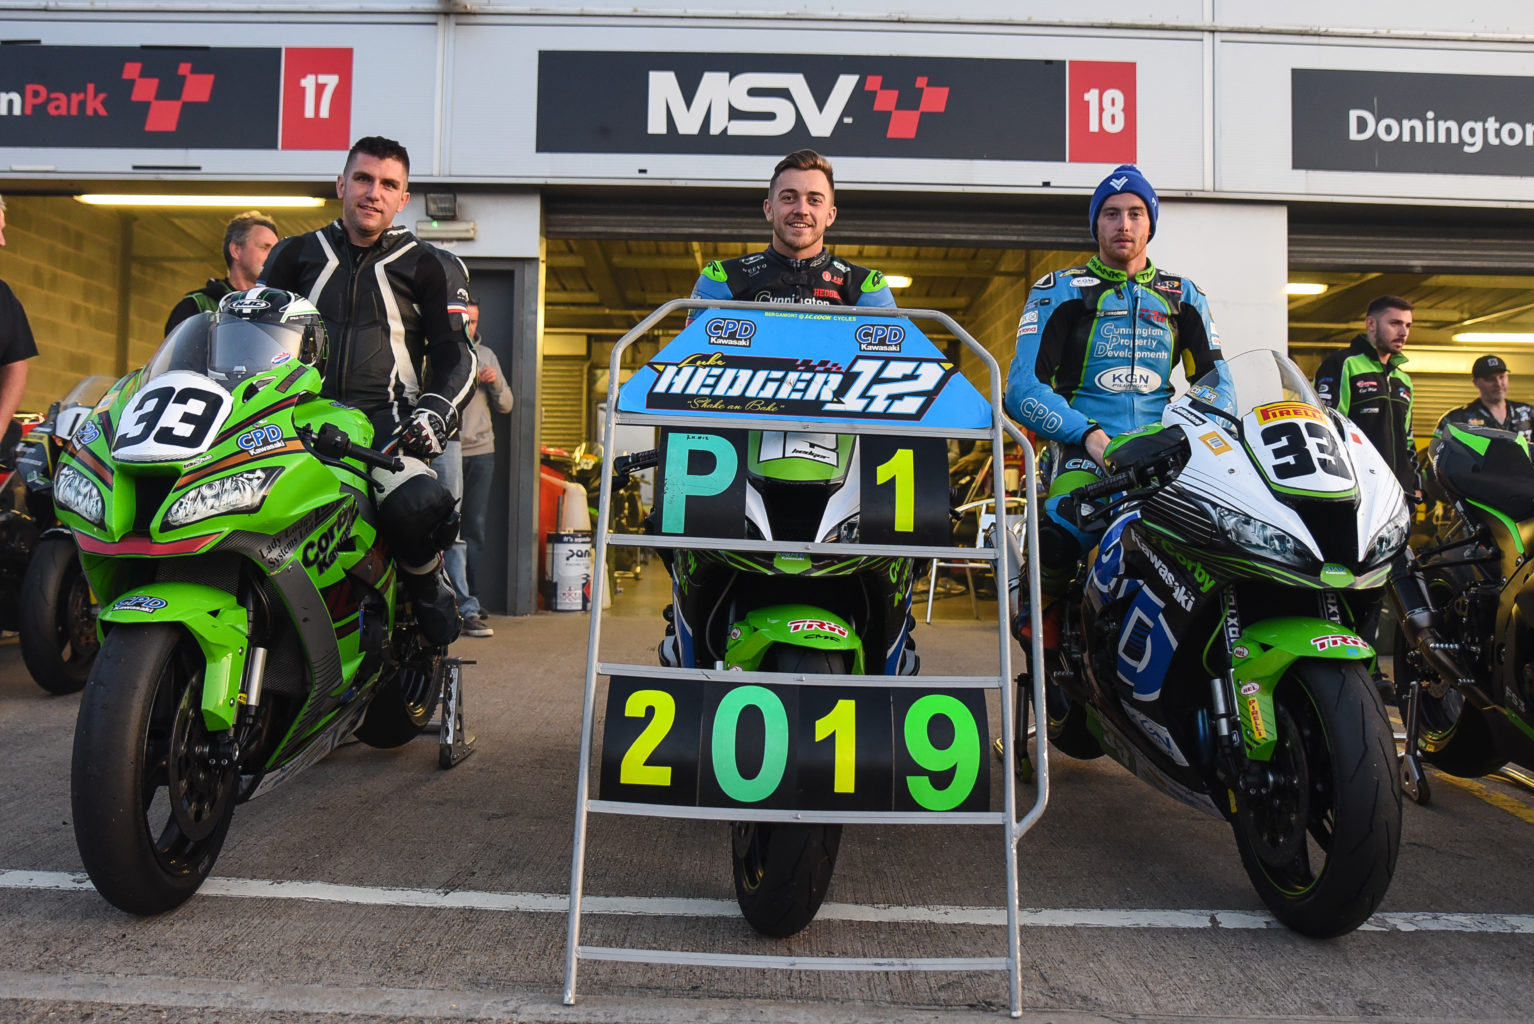 Cunnington held off British Superbike rider Matt Truelove and Supersport regular, brother Harry, to take the win and the title...